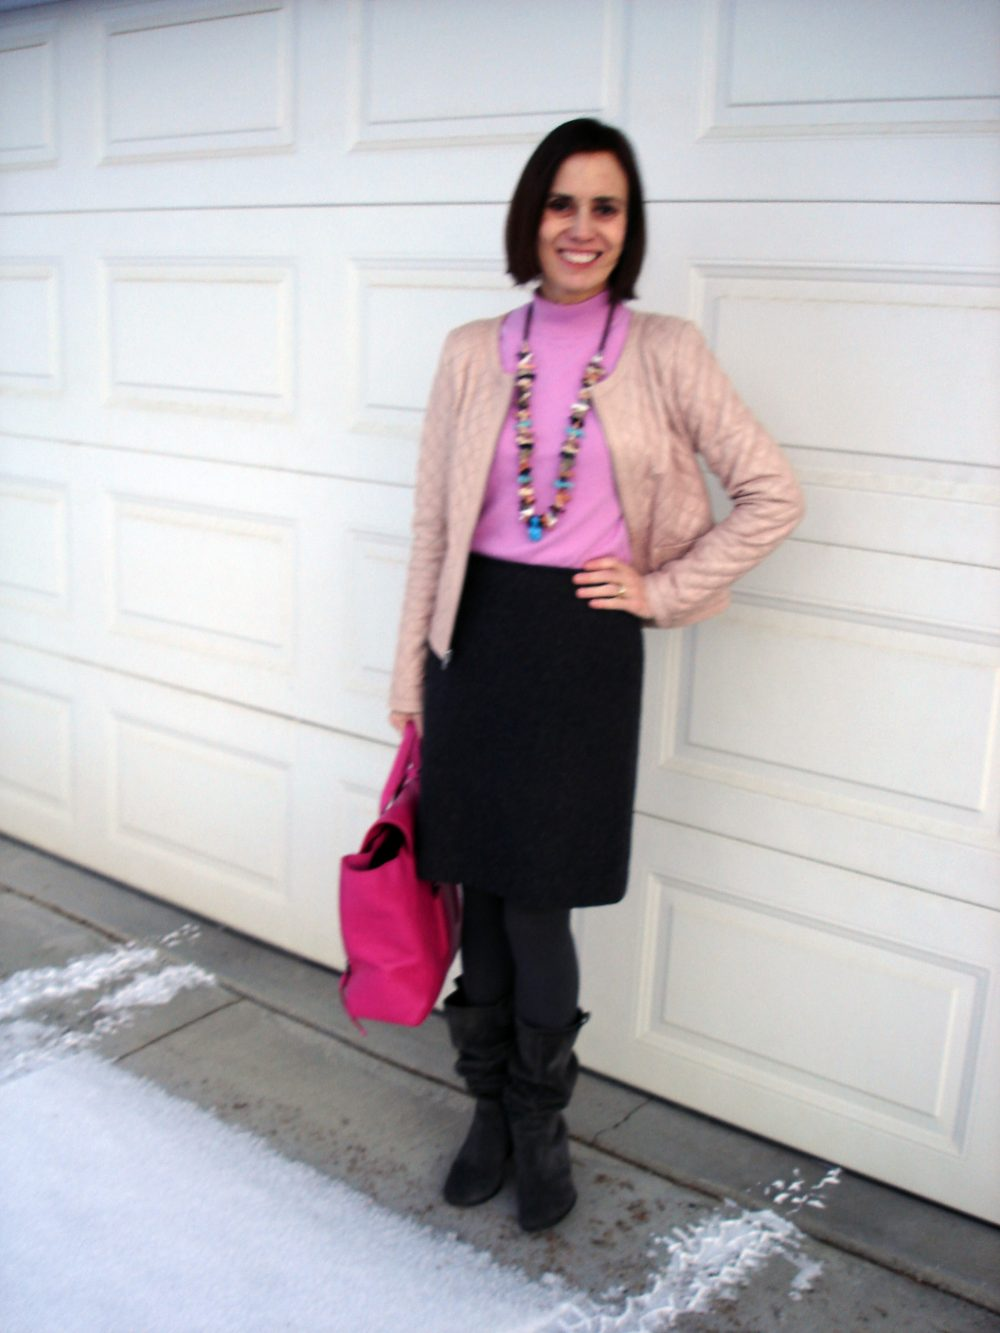 style book author in desatured gary-pink outfitof sweater, jacket, tights, skirt and boots